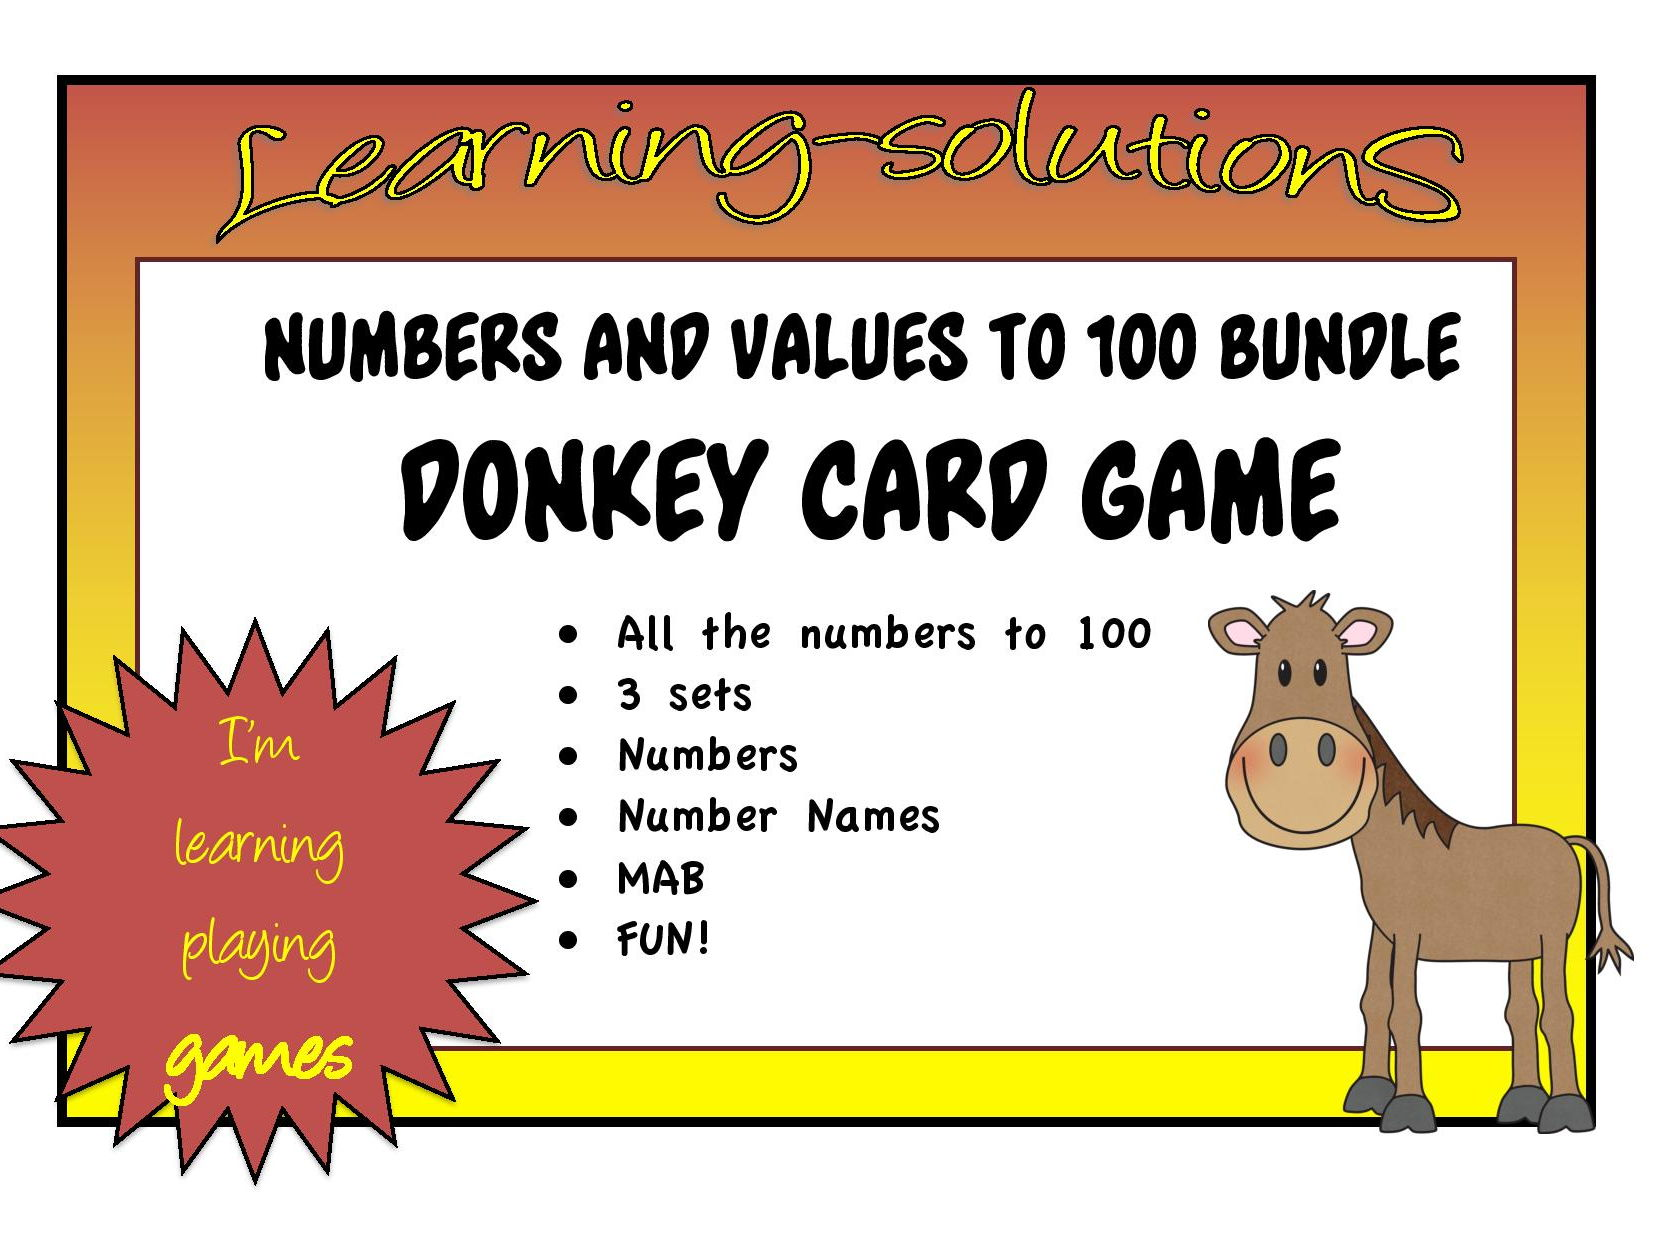 NUMBERS TO 100 - Number Names, Numbers, Pop Sticks and MAB + DONKEY Card Game